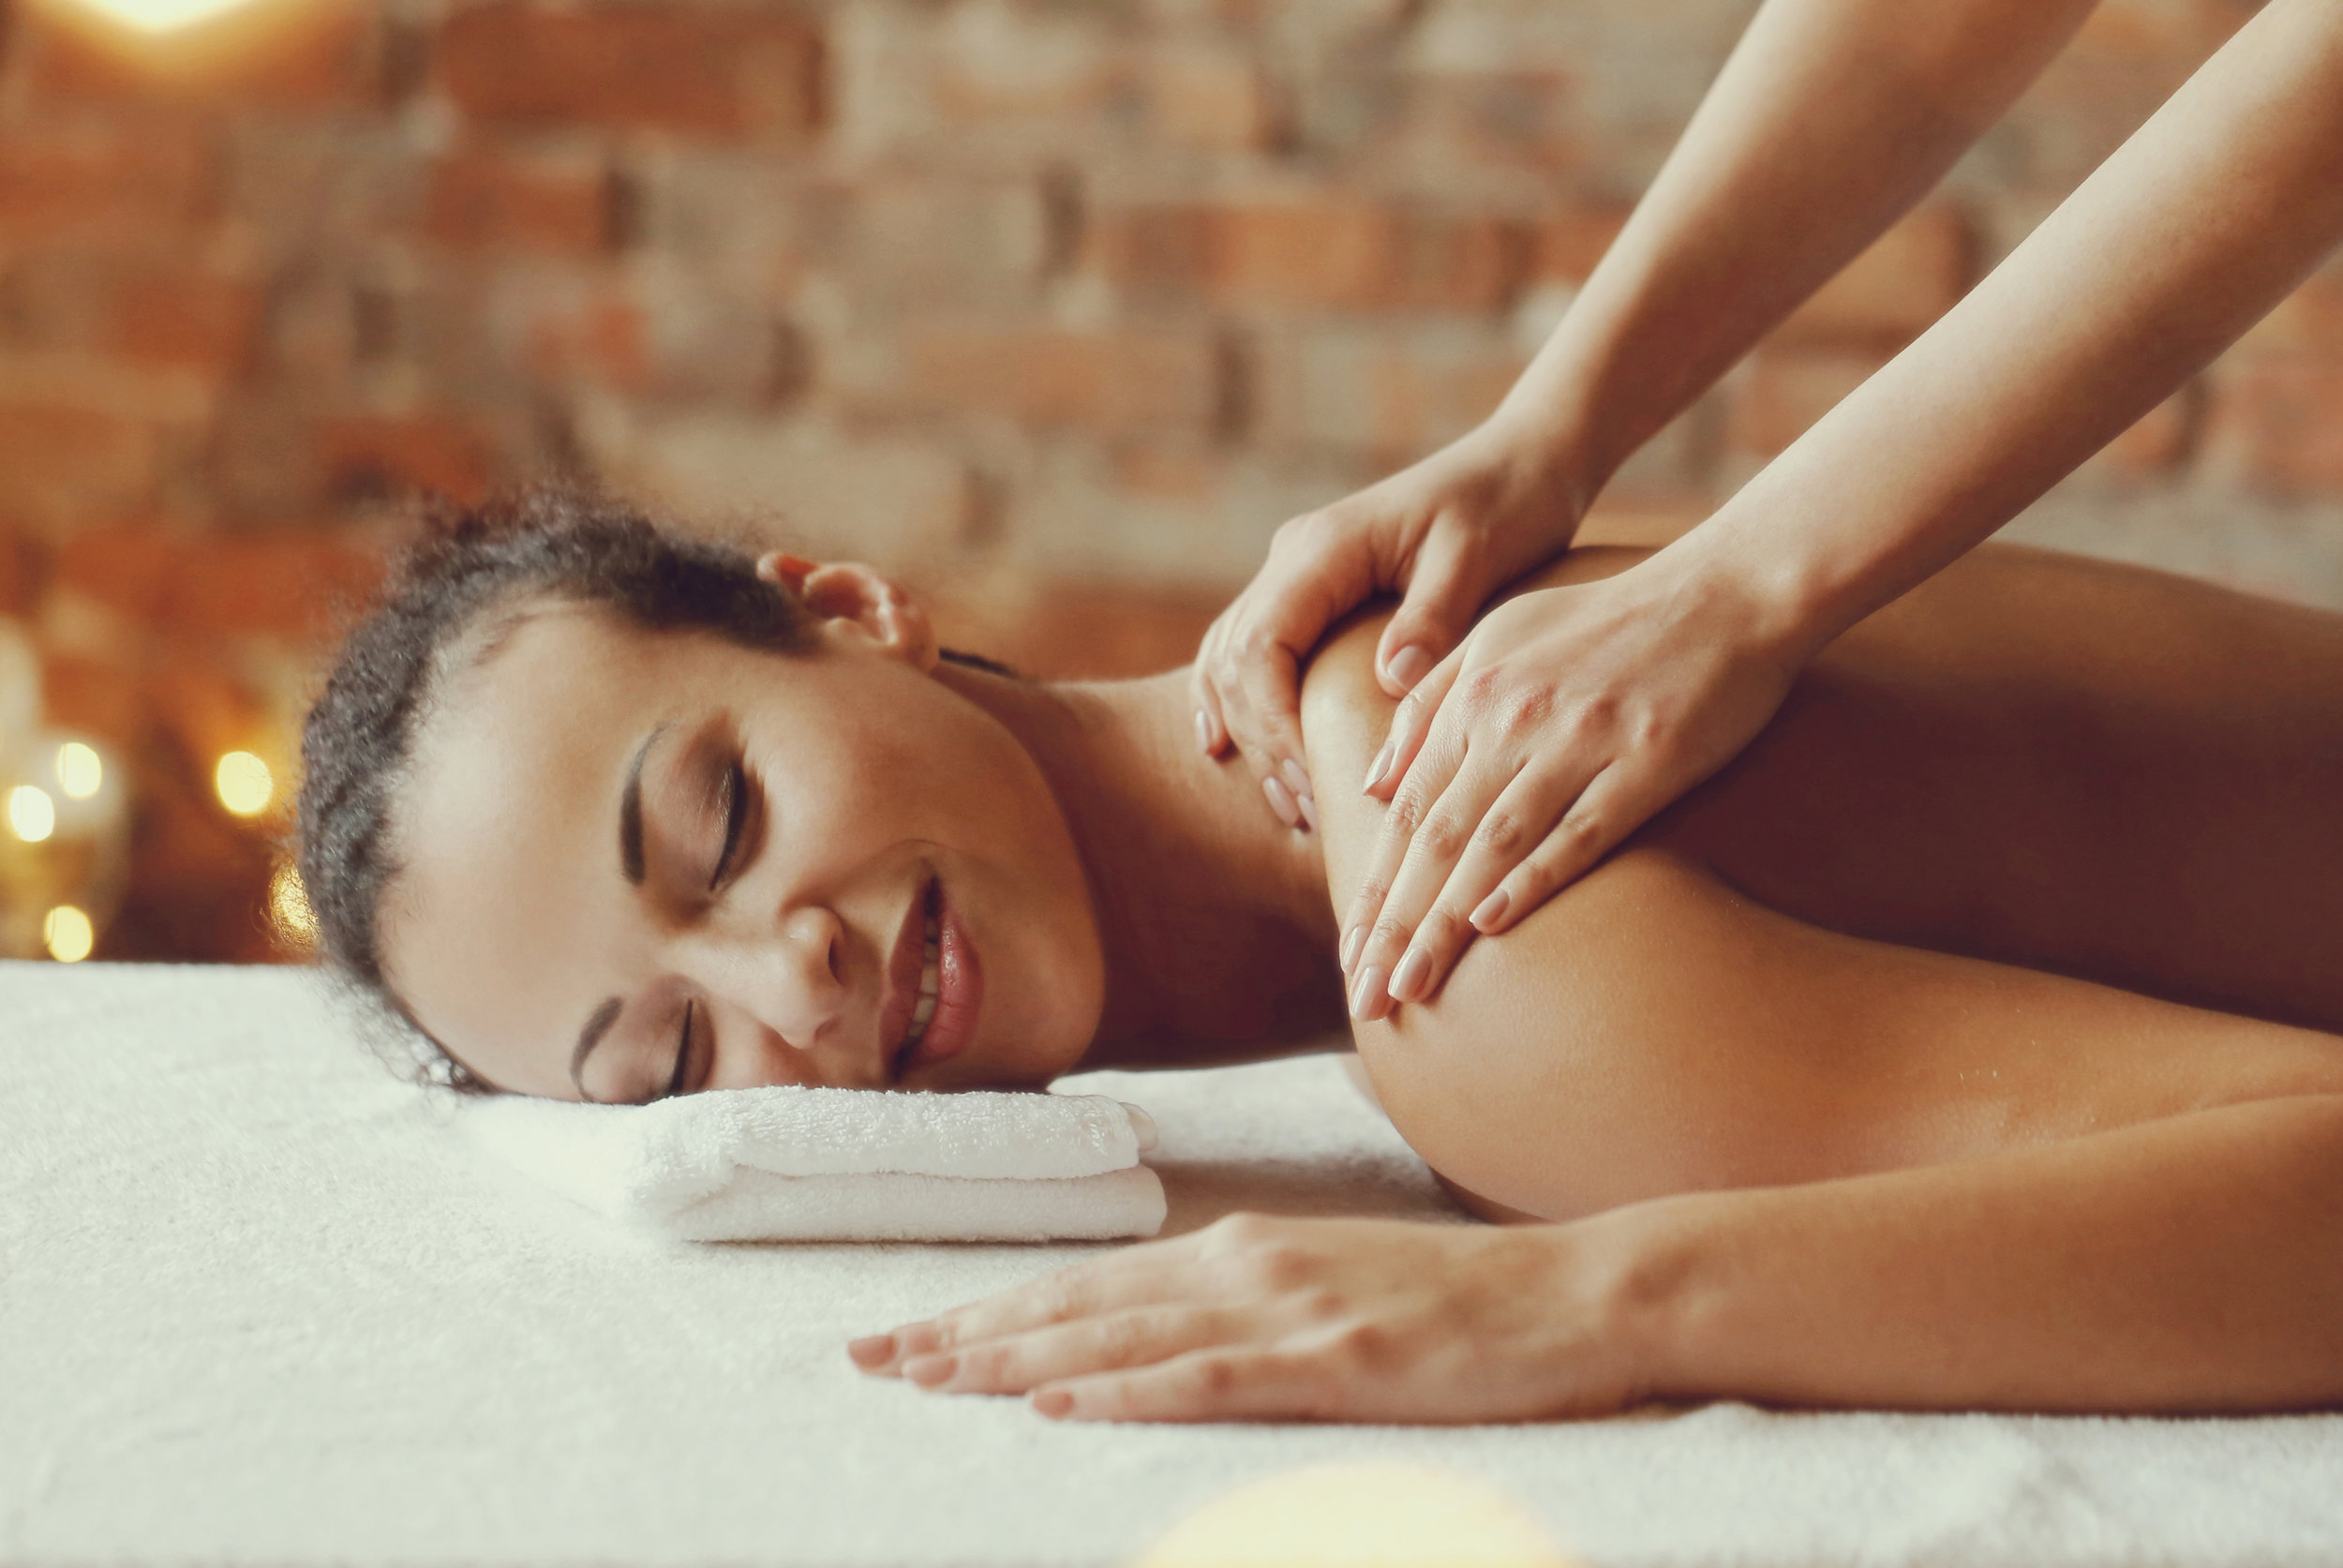 southwind-health-collective-woman-receiving-massage